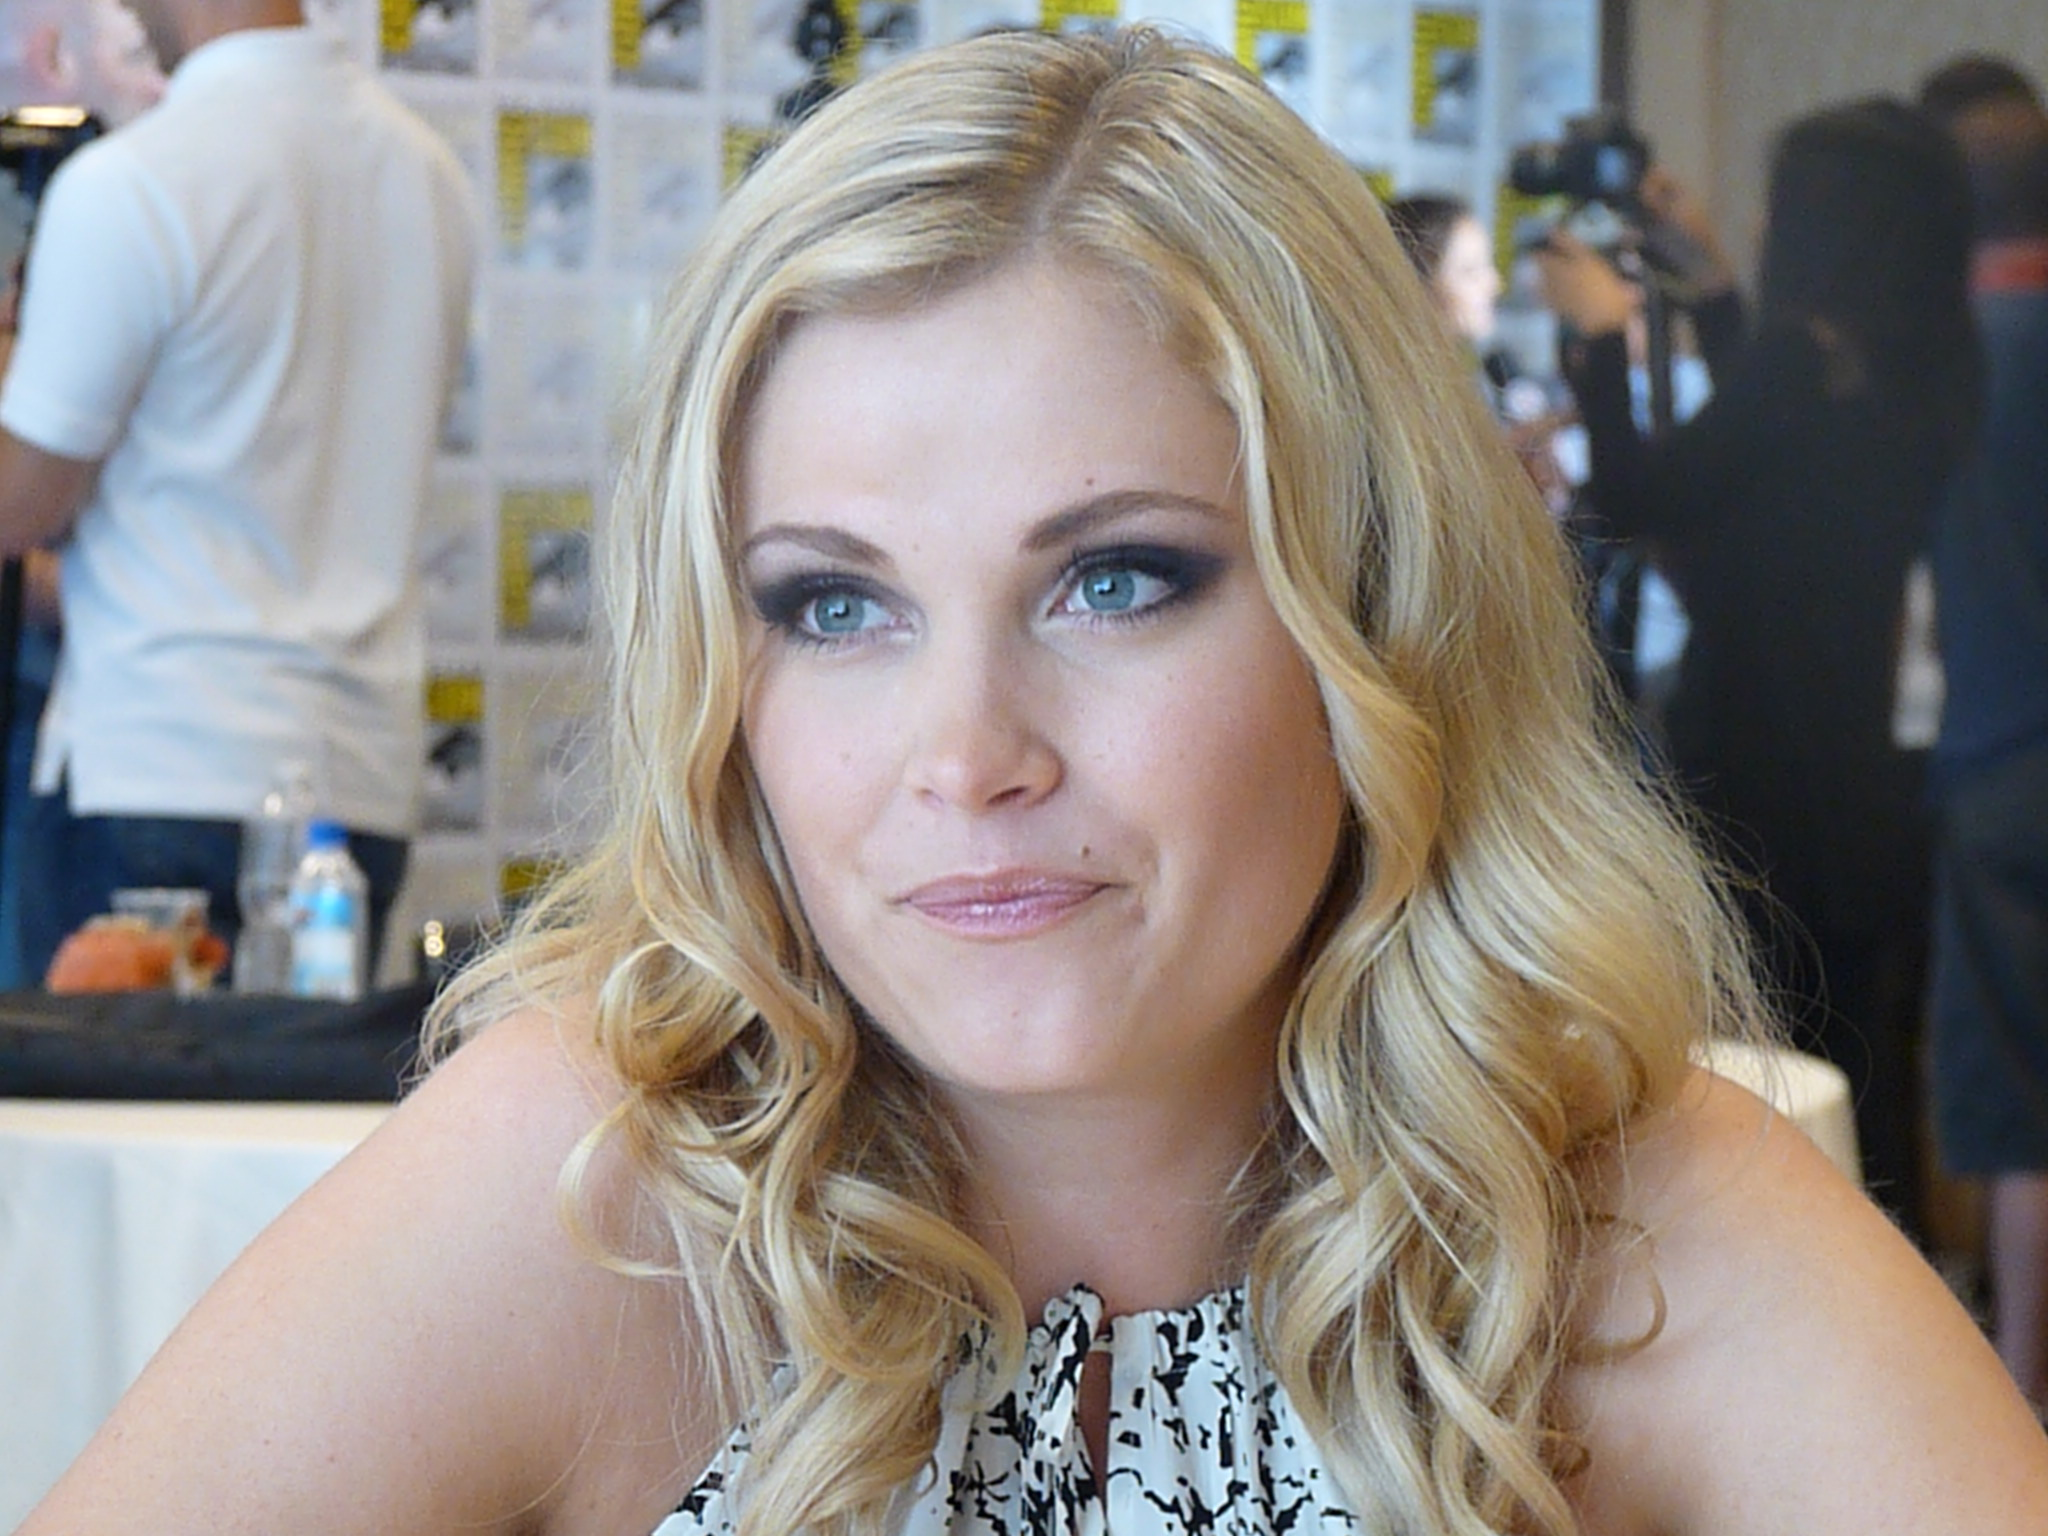 eliza taylor i need youeliza taylor instagram, eliza taylor cotter, eliza taylor gif, eliza taylor 2017, eliza taylor tumblr, eliza taylor instagram official, eliza taylor wiki, eliza taylor 2016, eliza taylor gallery, eliza taylor and her girlfriend, eliza taylor interview, eliza taylor no diggity, eliza taylor site, eliza taylor takes on r&b lyrics, eliza taylor wdw, eliza taylor marie avgeropoulos, eliza taylor i need you, eliza taylor insta, eliza taylor snapchat, eliza taylor i need you lyrics